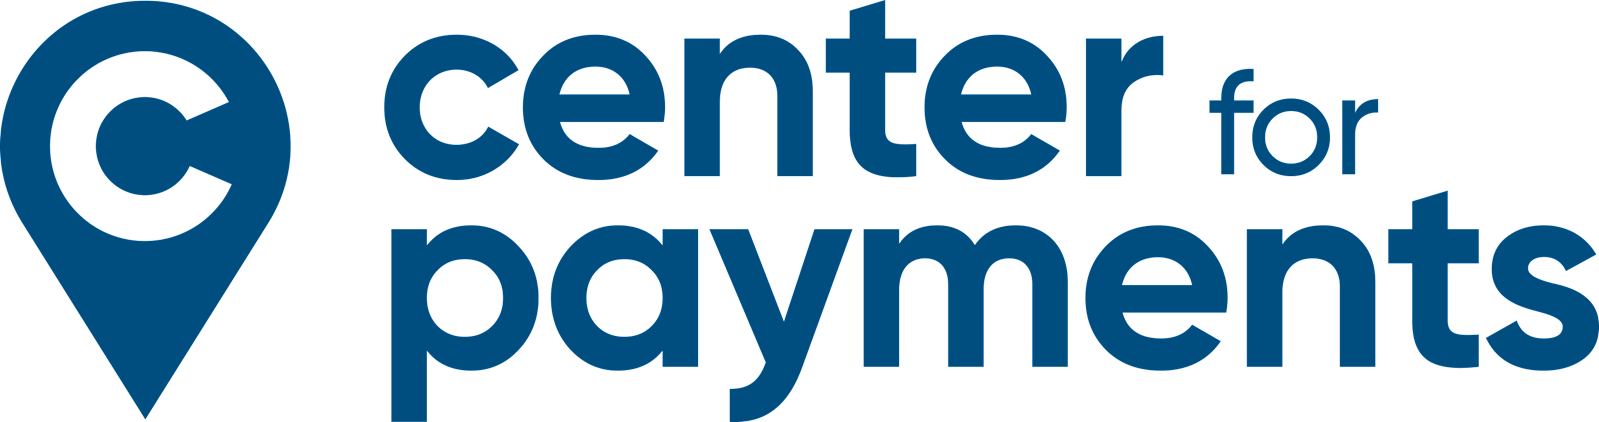 Center for Payments